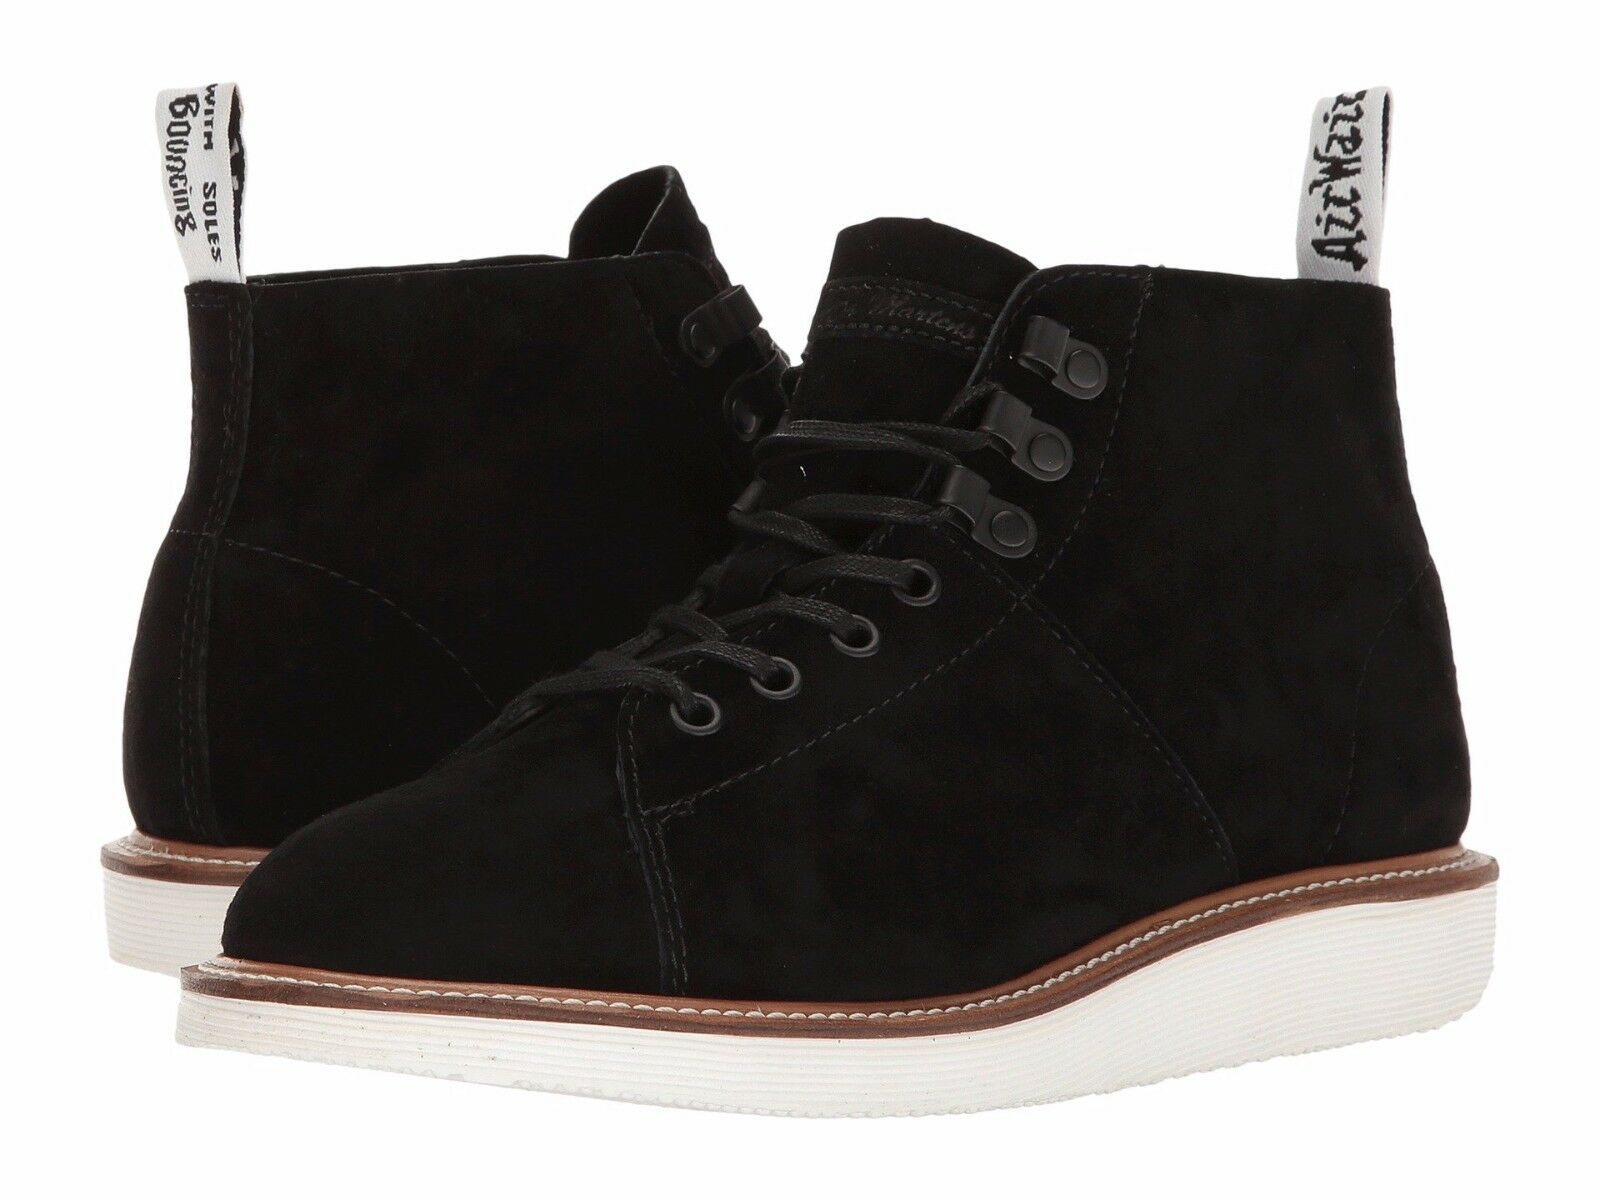 Doc Martens LESLEY LTT Black Suede Leather Bouncing Sole Chukka Boot Wms 6 NWT